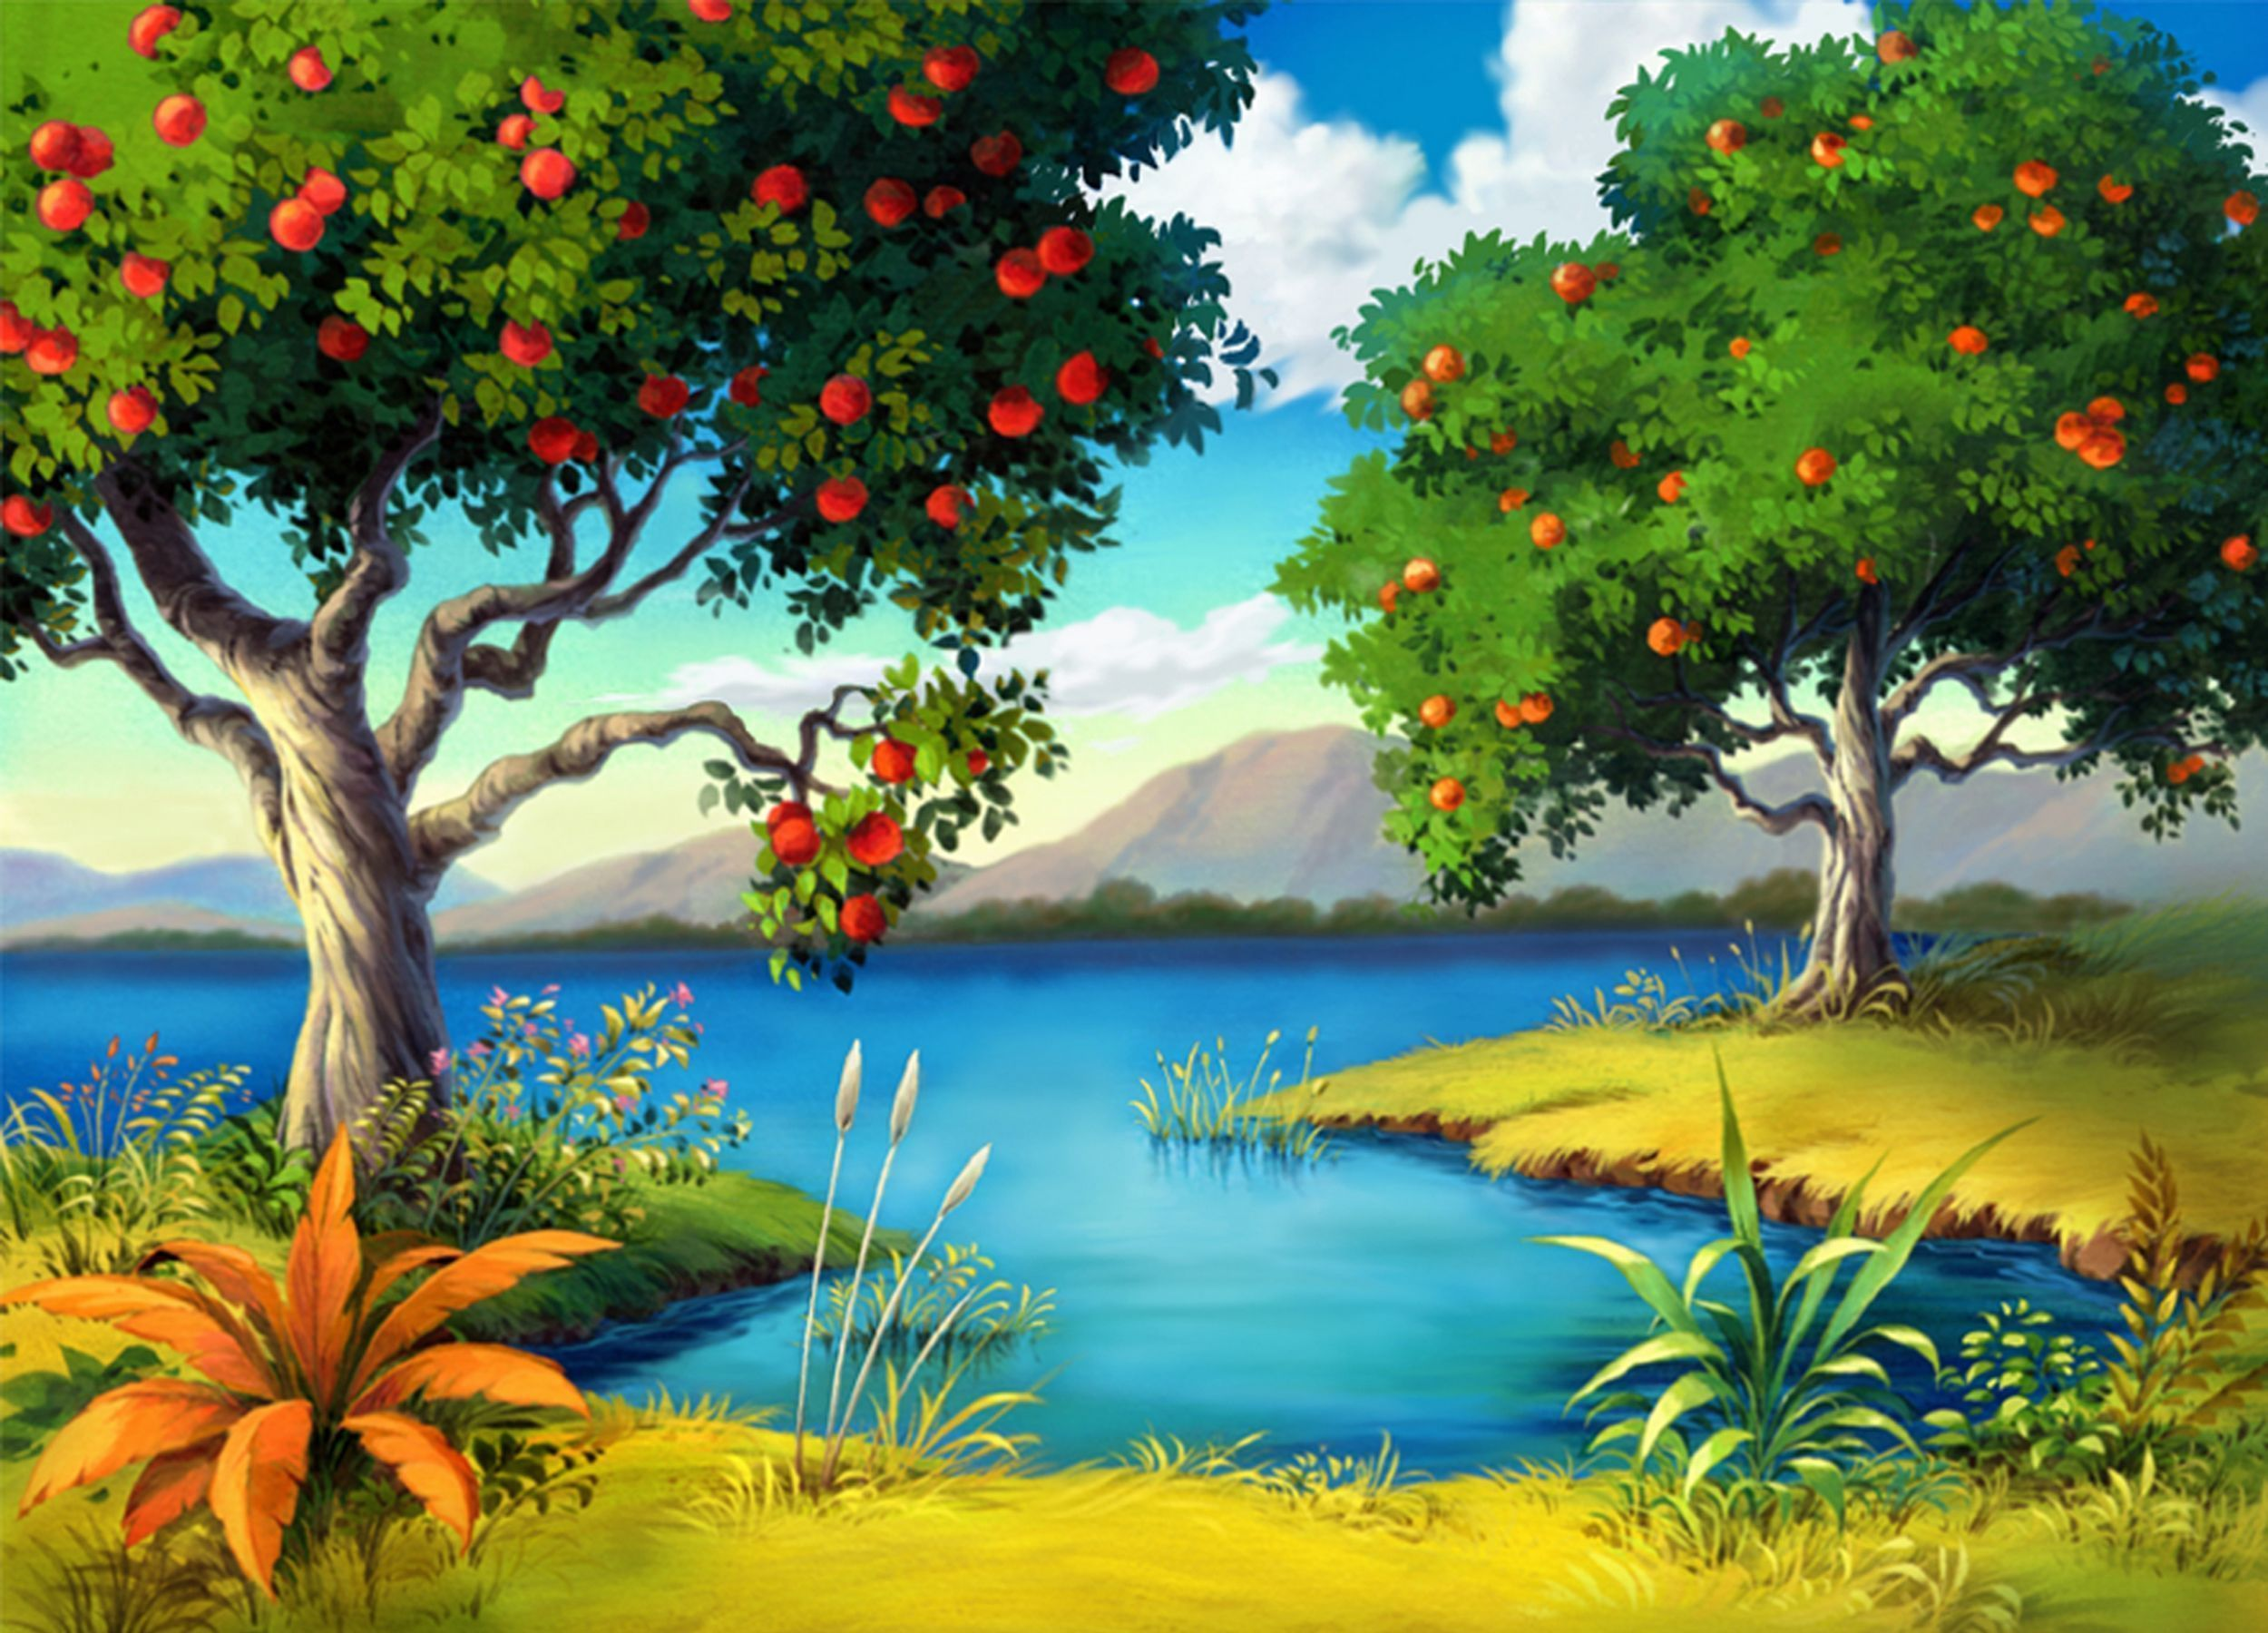 Pretty Lakes Colorful Colors Fantasy Flowers Grass Lake Pretty Sky Trees Hd Landscape Forest Wallpaper Episode Interactive Backgrounds